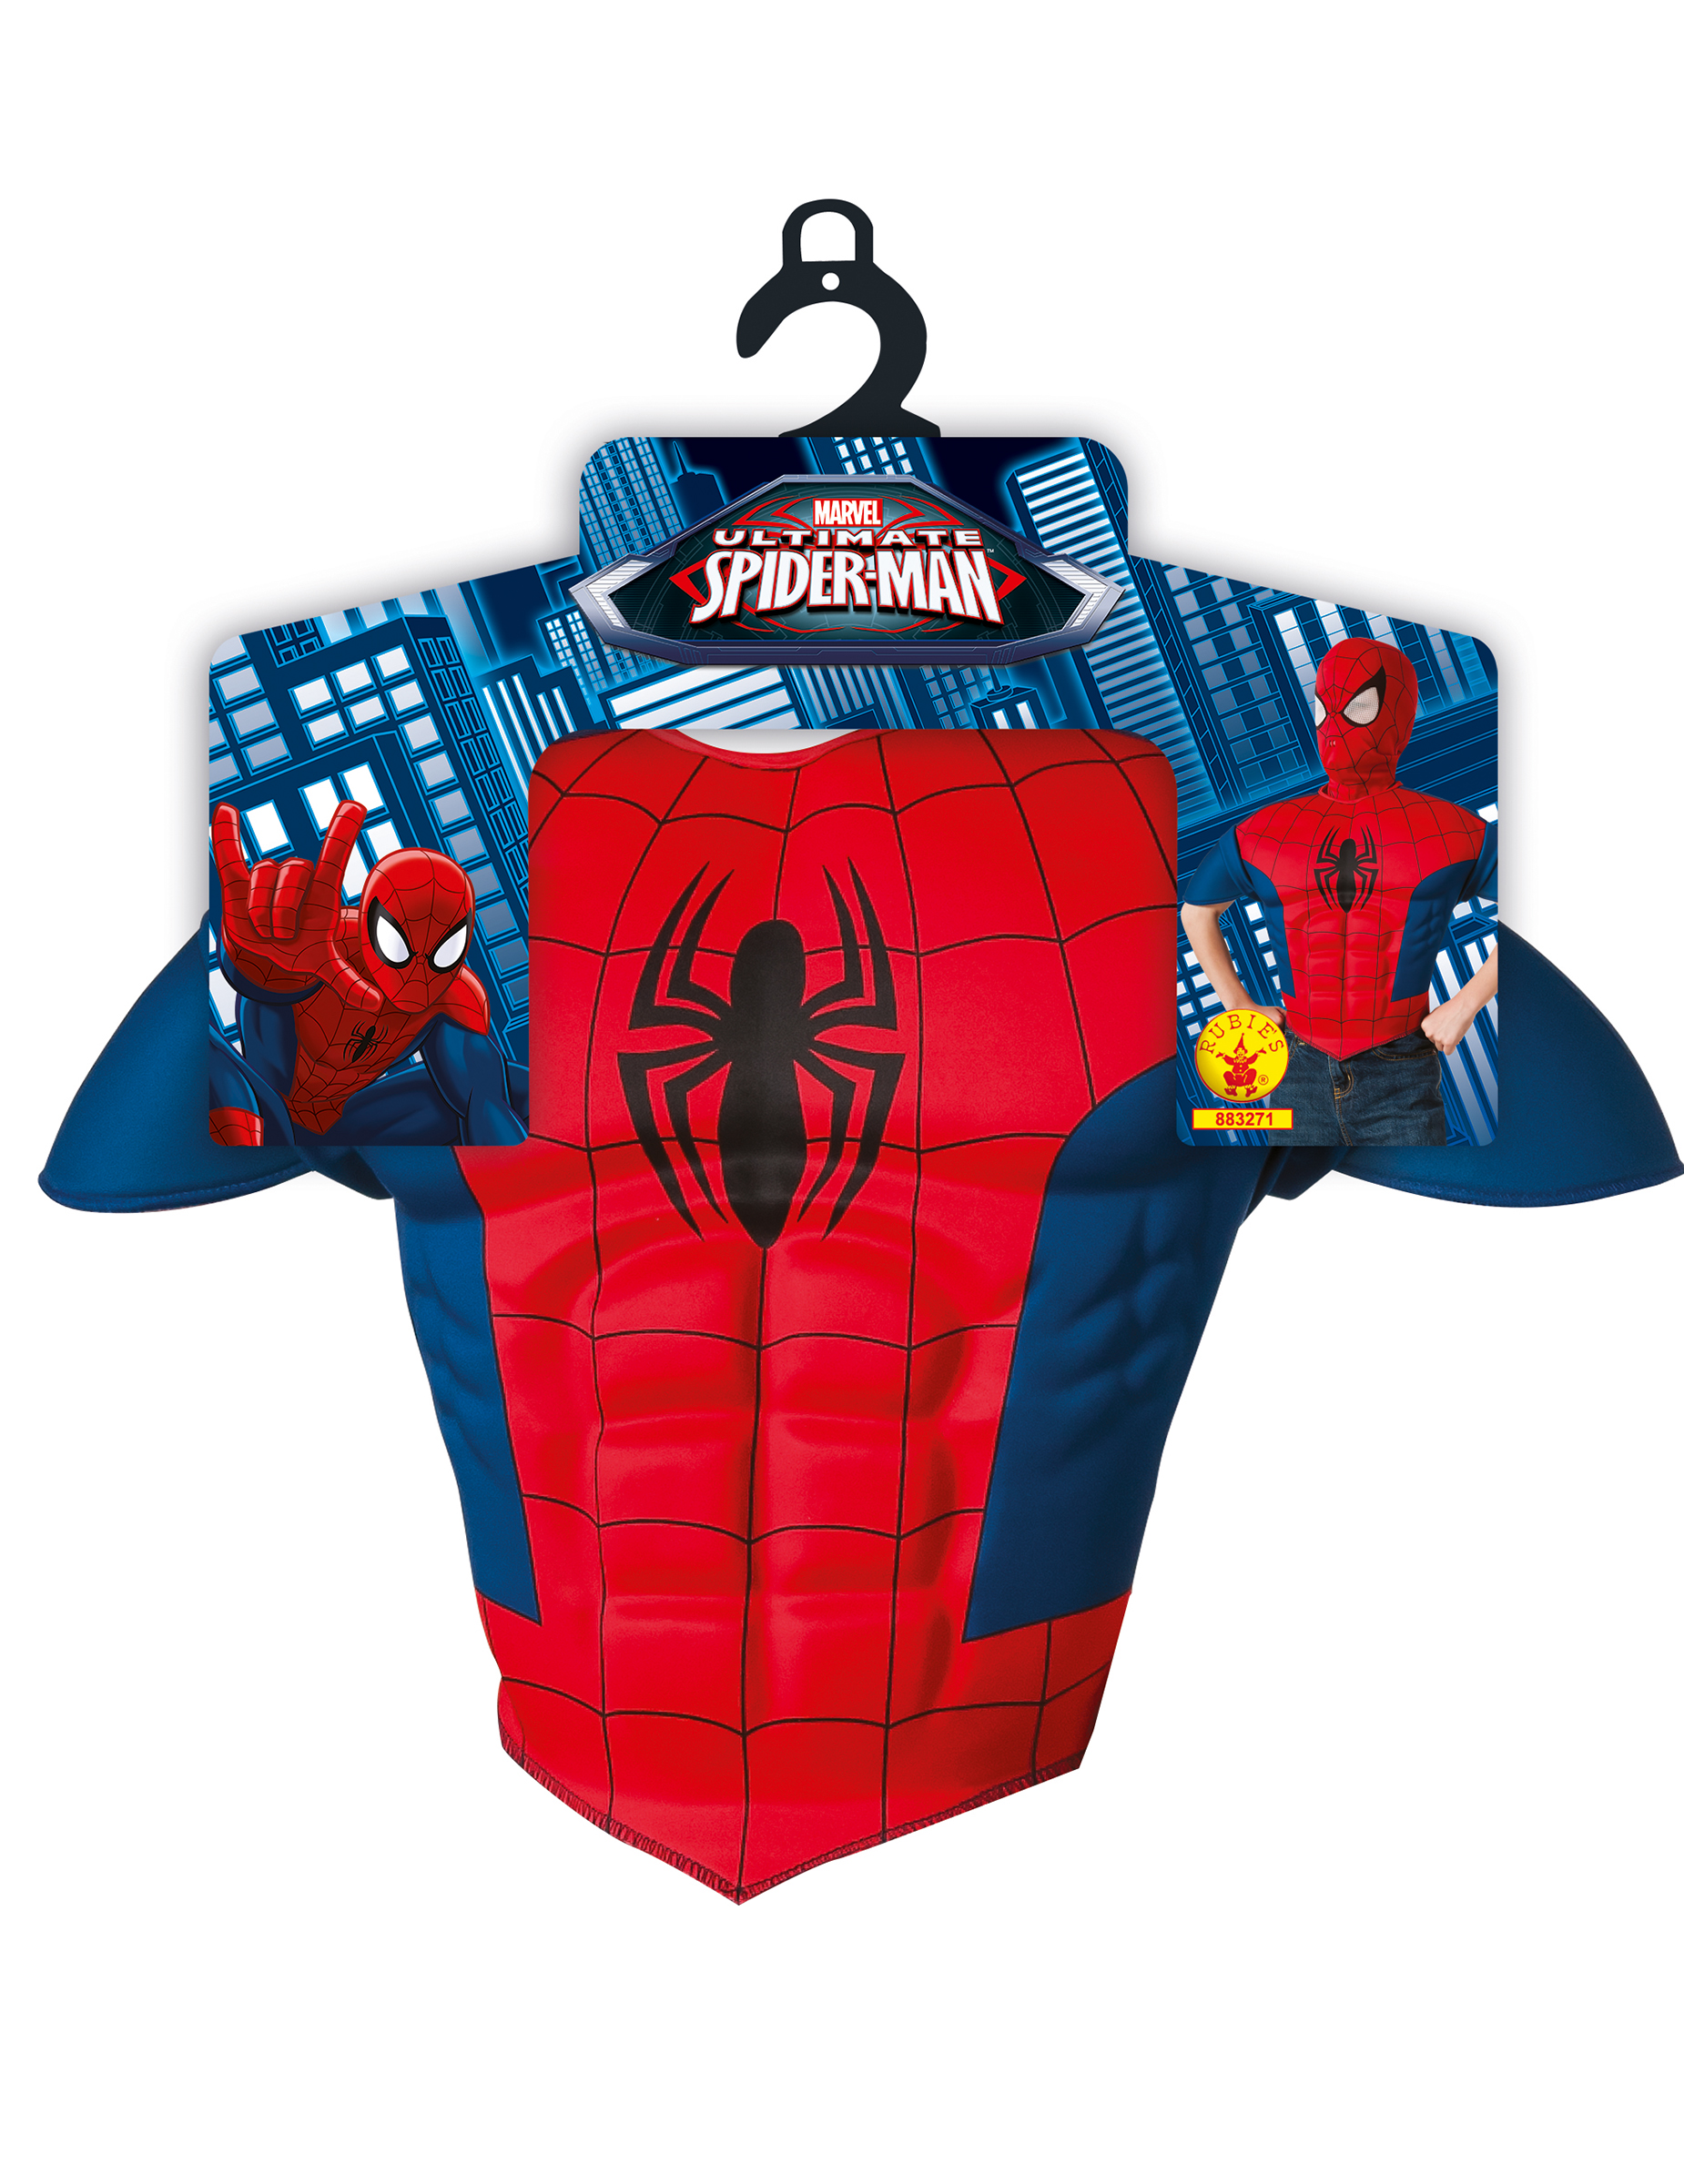 spiderman kost mset f r kinder mit gepolstertem oberteil und maske. Black Bedroom Furniture Sets. Home Design Ideas